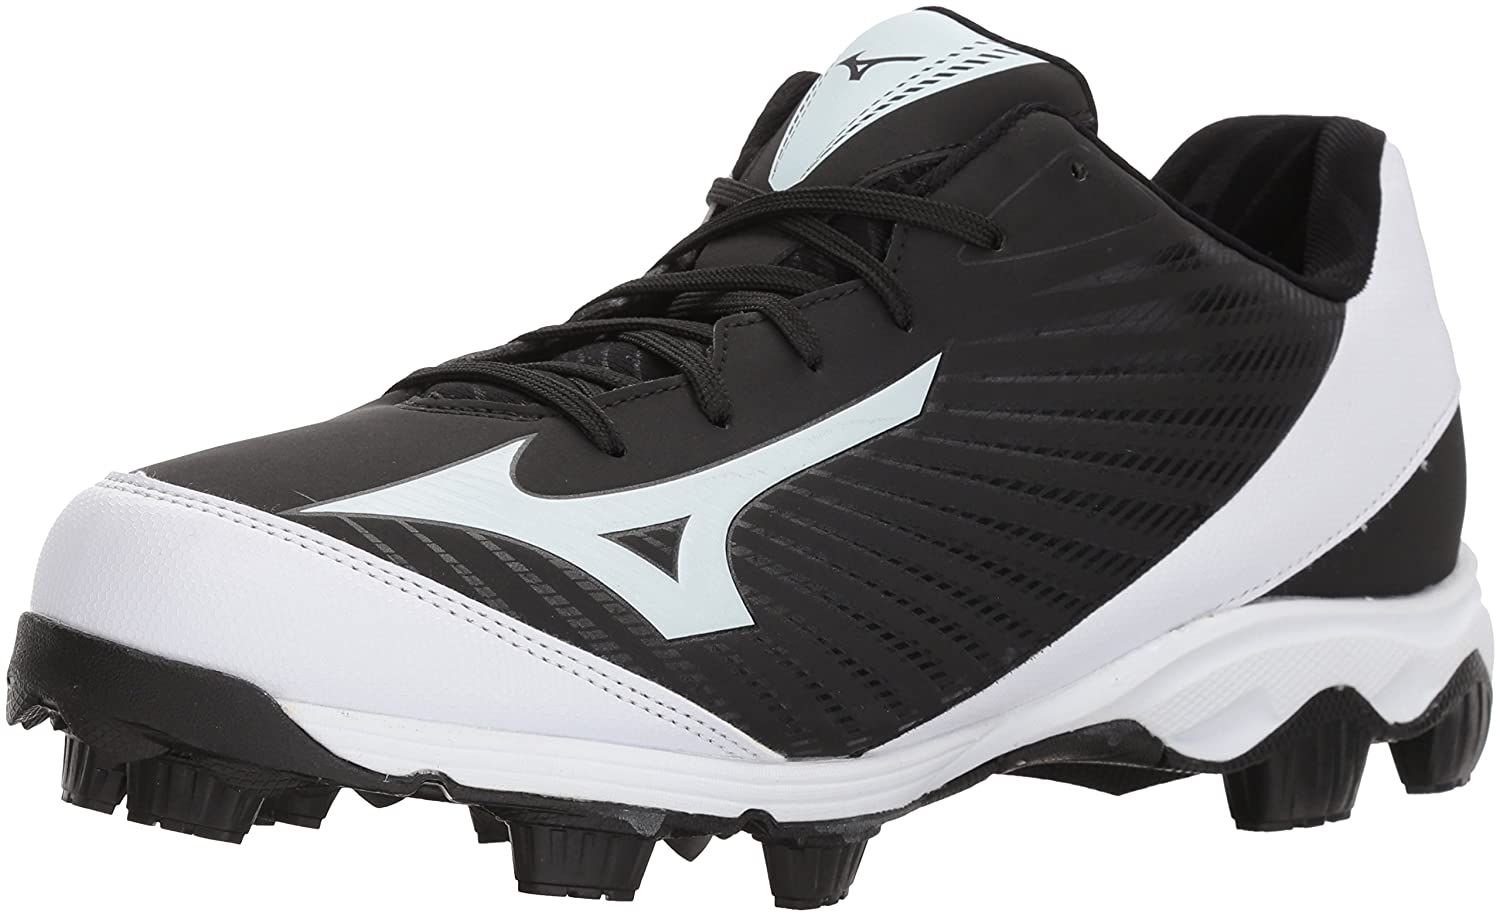 Mizuno (MIZD9) メンズ 9-Spike Advanced Franchise 9 Molded Baseball Cleat Low B071ZZDN1Z 11.5 D US|ブラック/ホワイト ブラック/ホワイト 11.5 D US